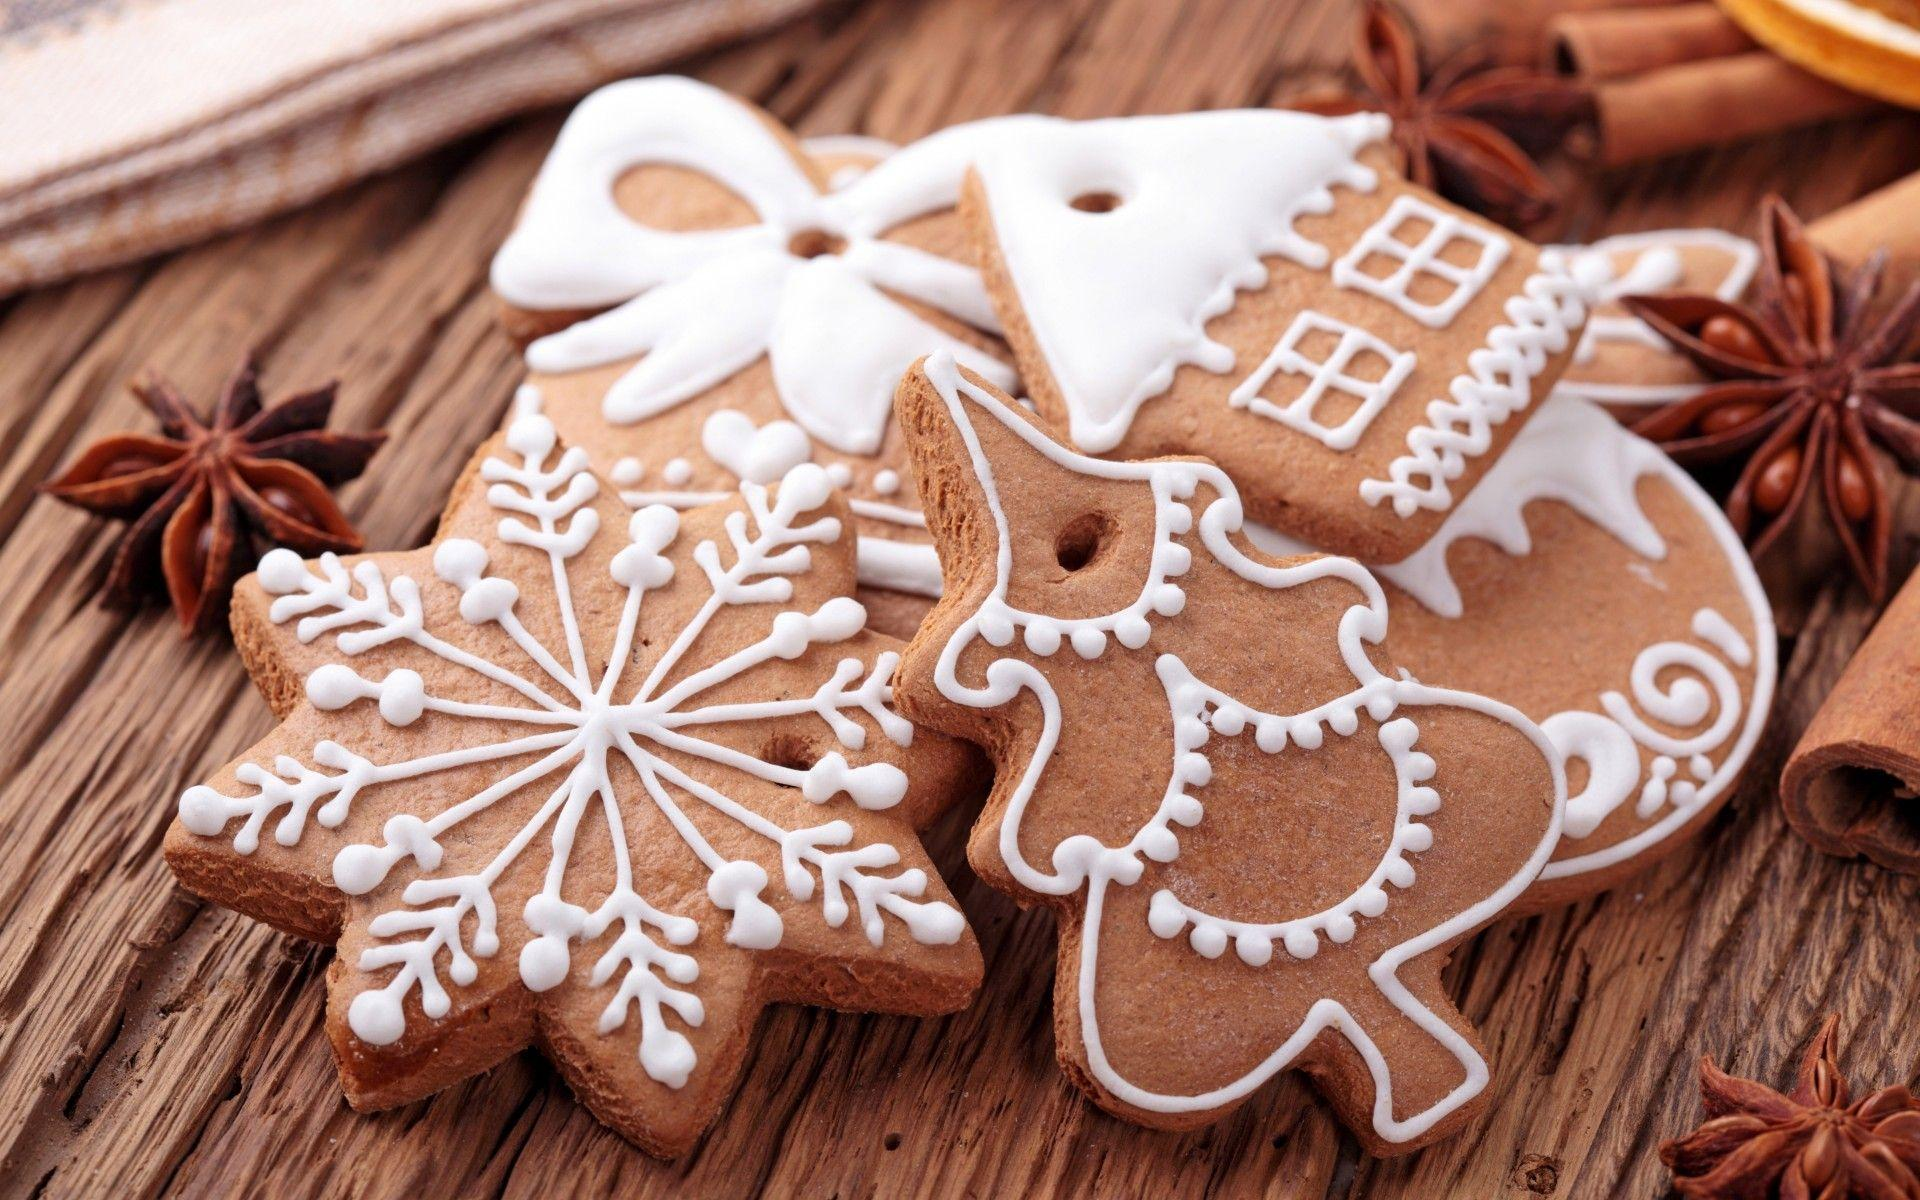 Christmas Cookies Wide - Wallpaper, High Definition, High Quality ...